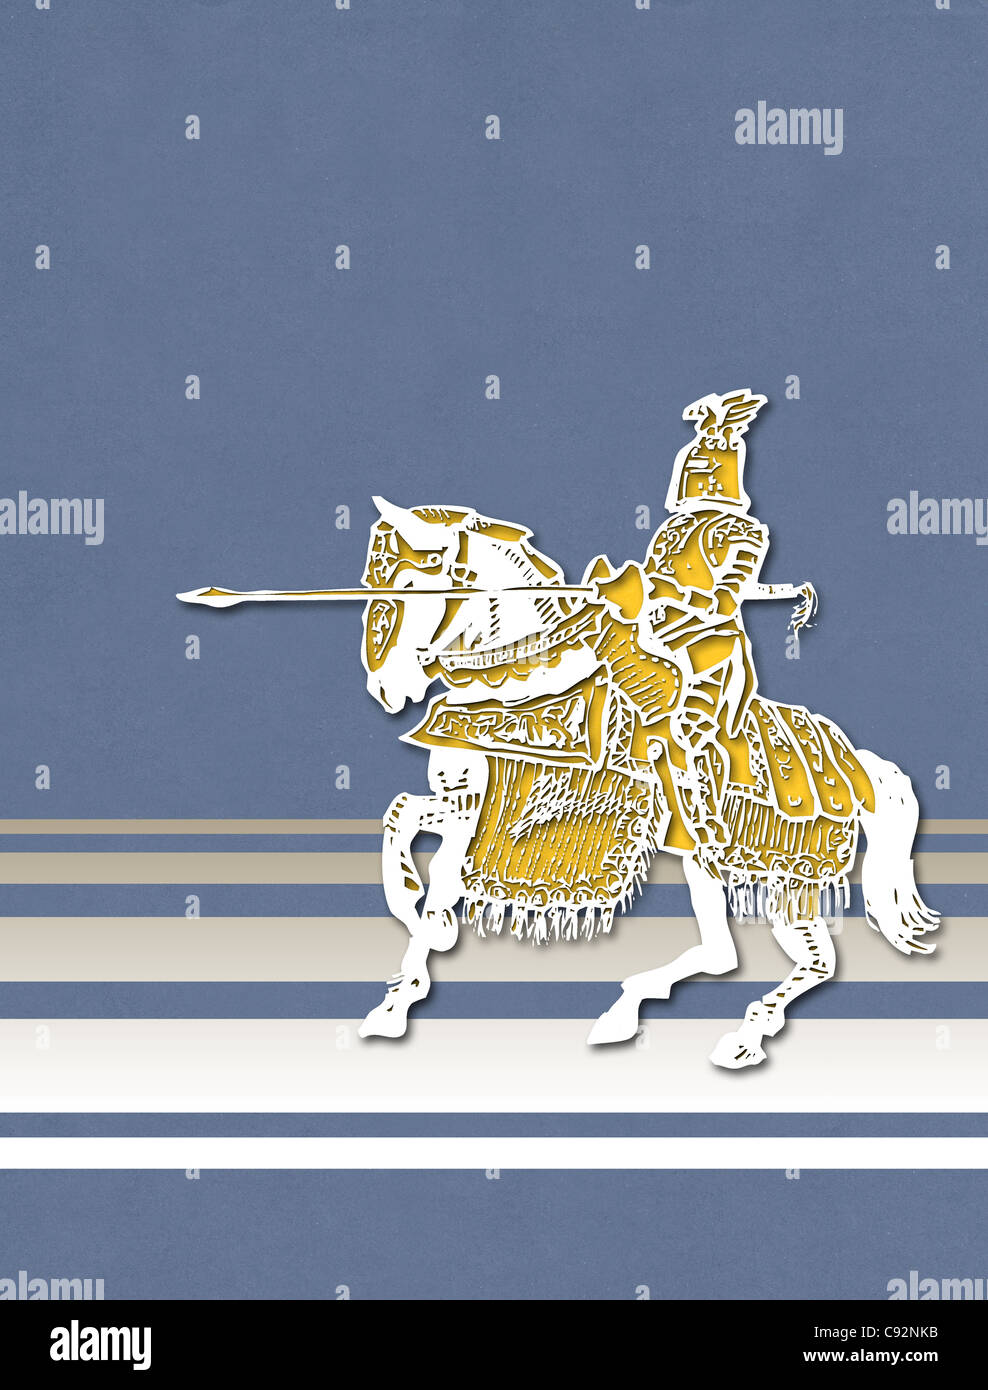 Cut-out style illustration of horse and medieval knight - Stock Image